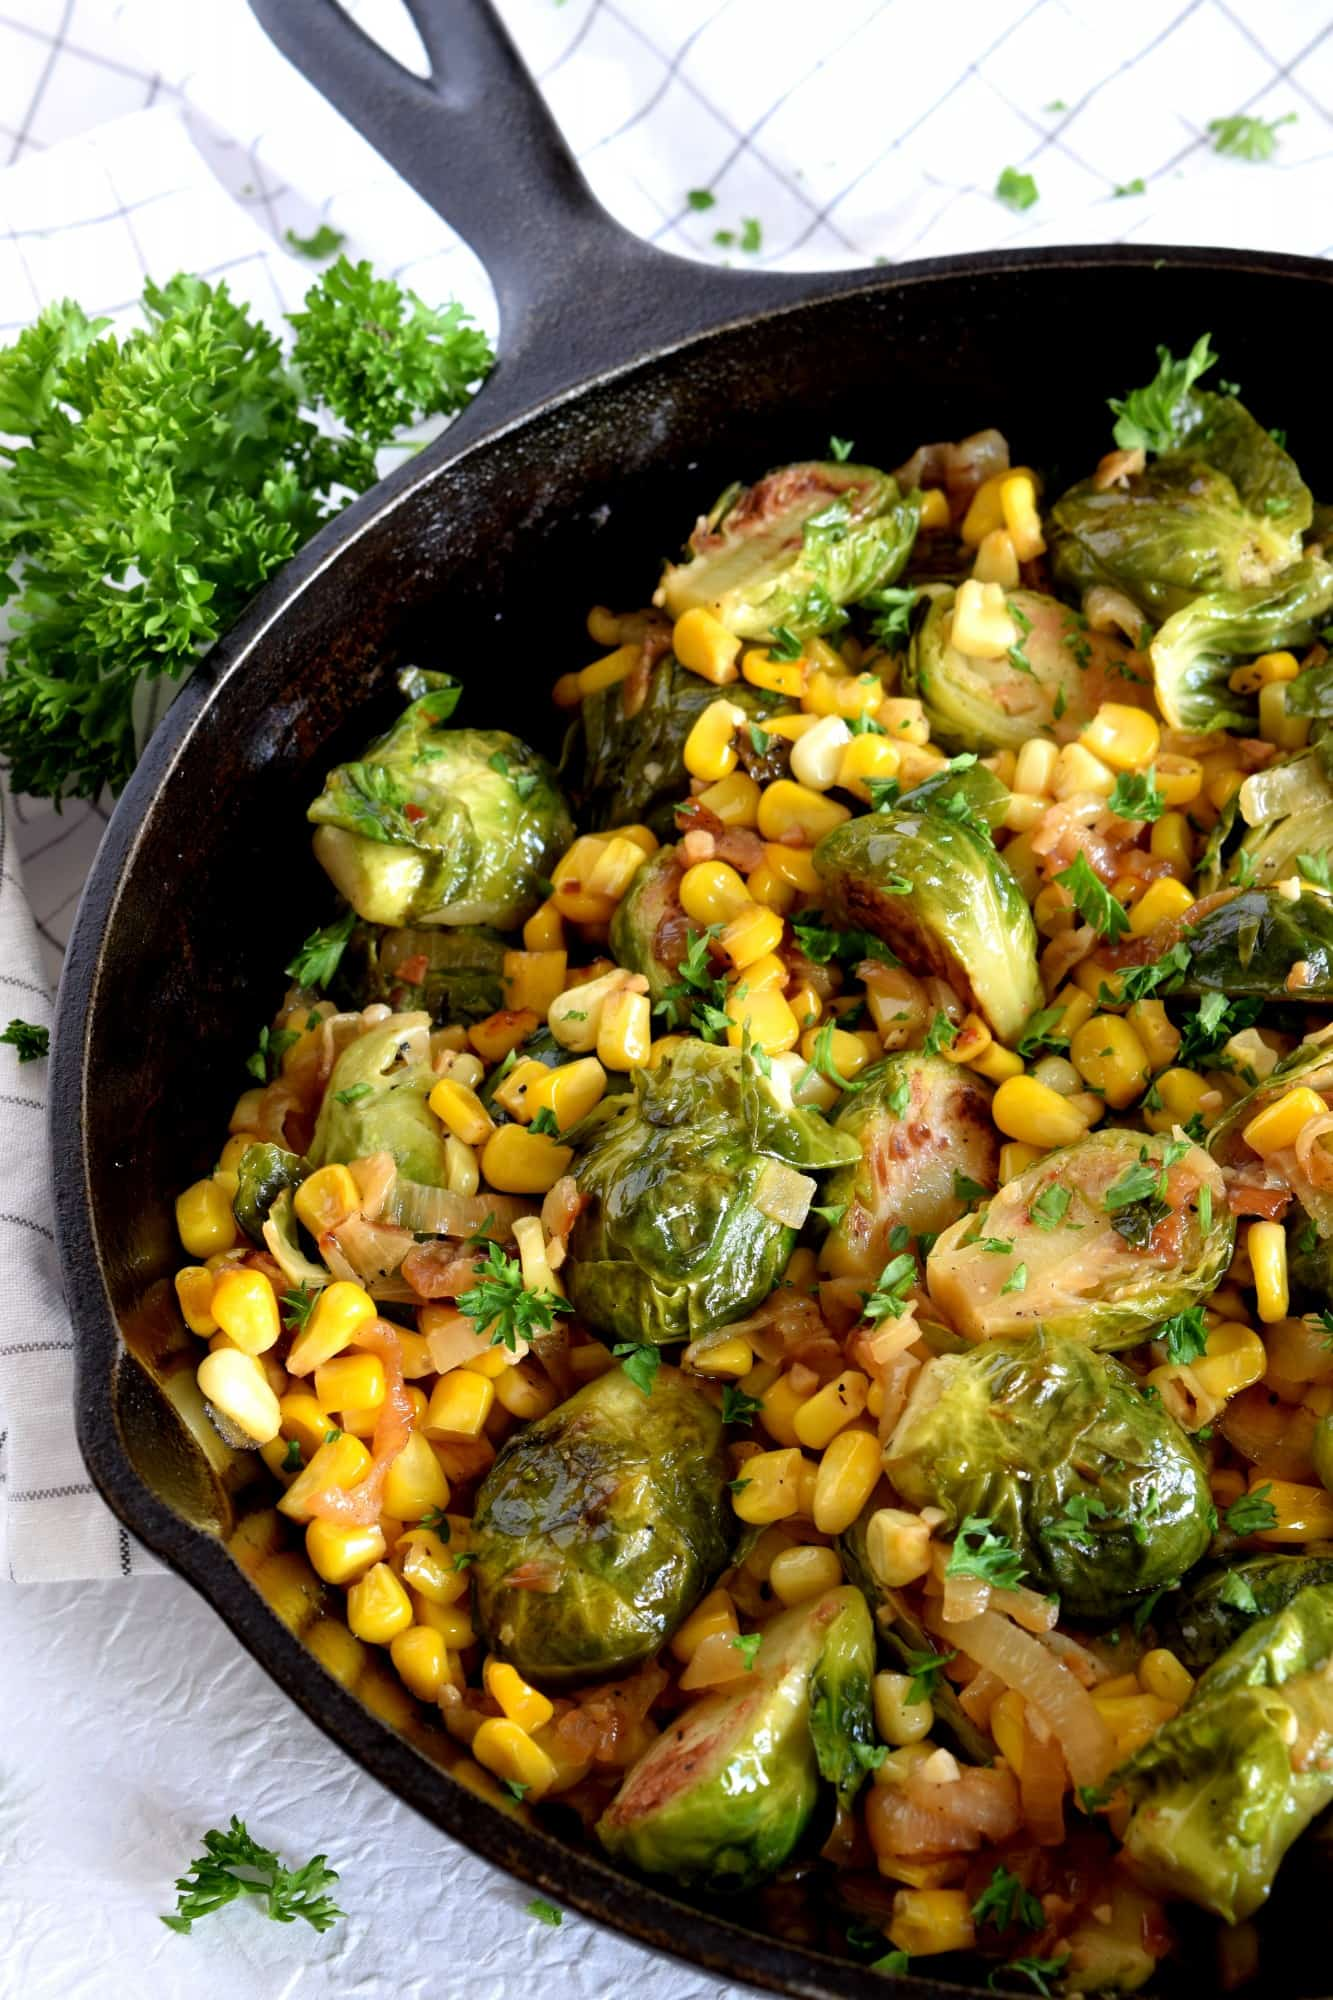 Spicy Pan Seared Brussel Sprouts With Corn And Caramelized Onions